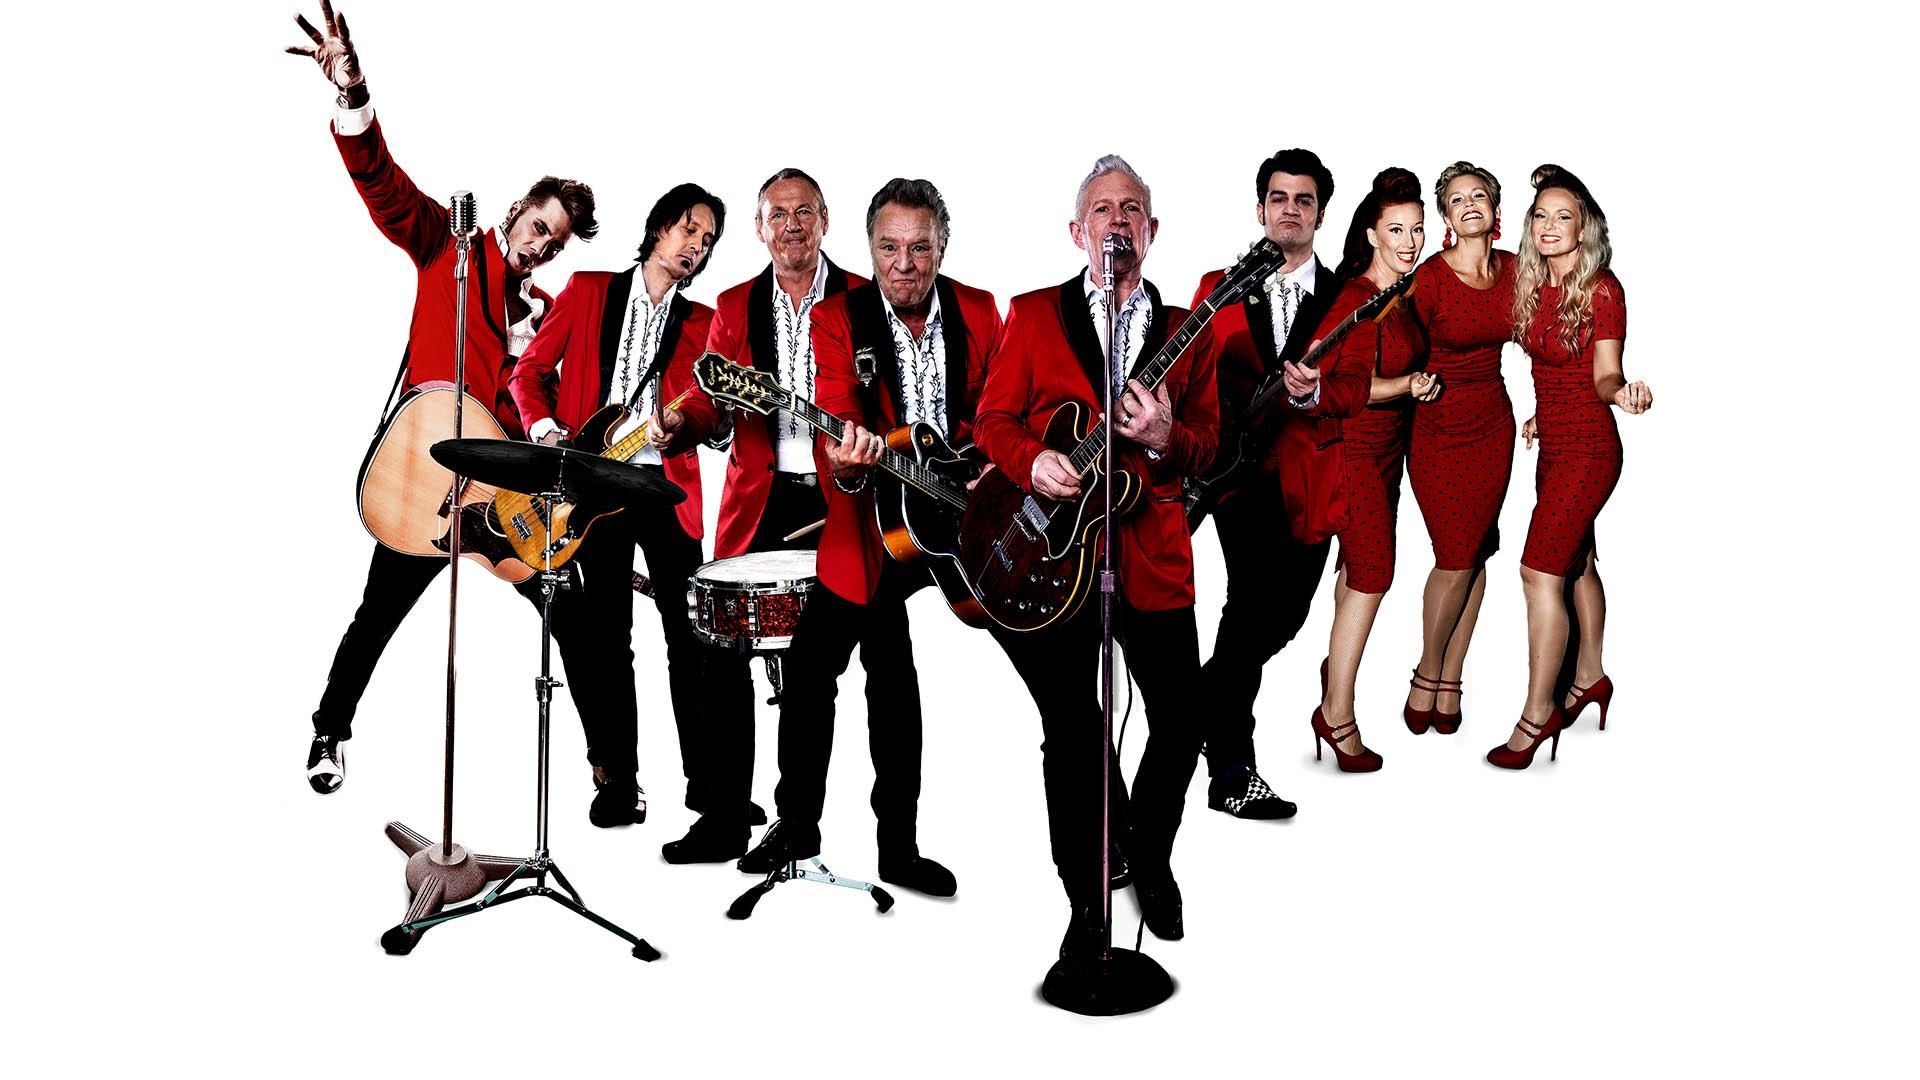 The Boppers, Brolle & Rockabilly Fabulos - Christmas Rock n roll show